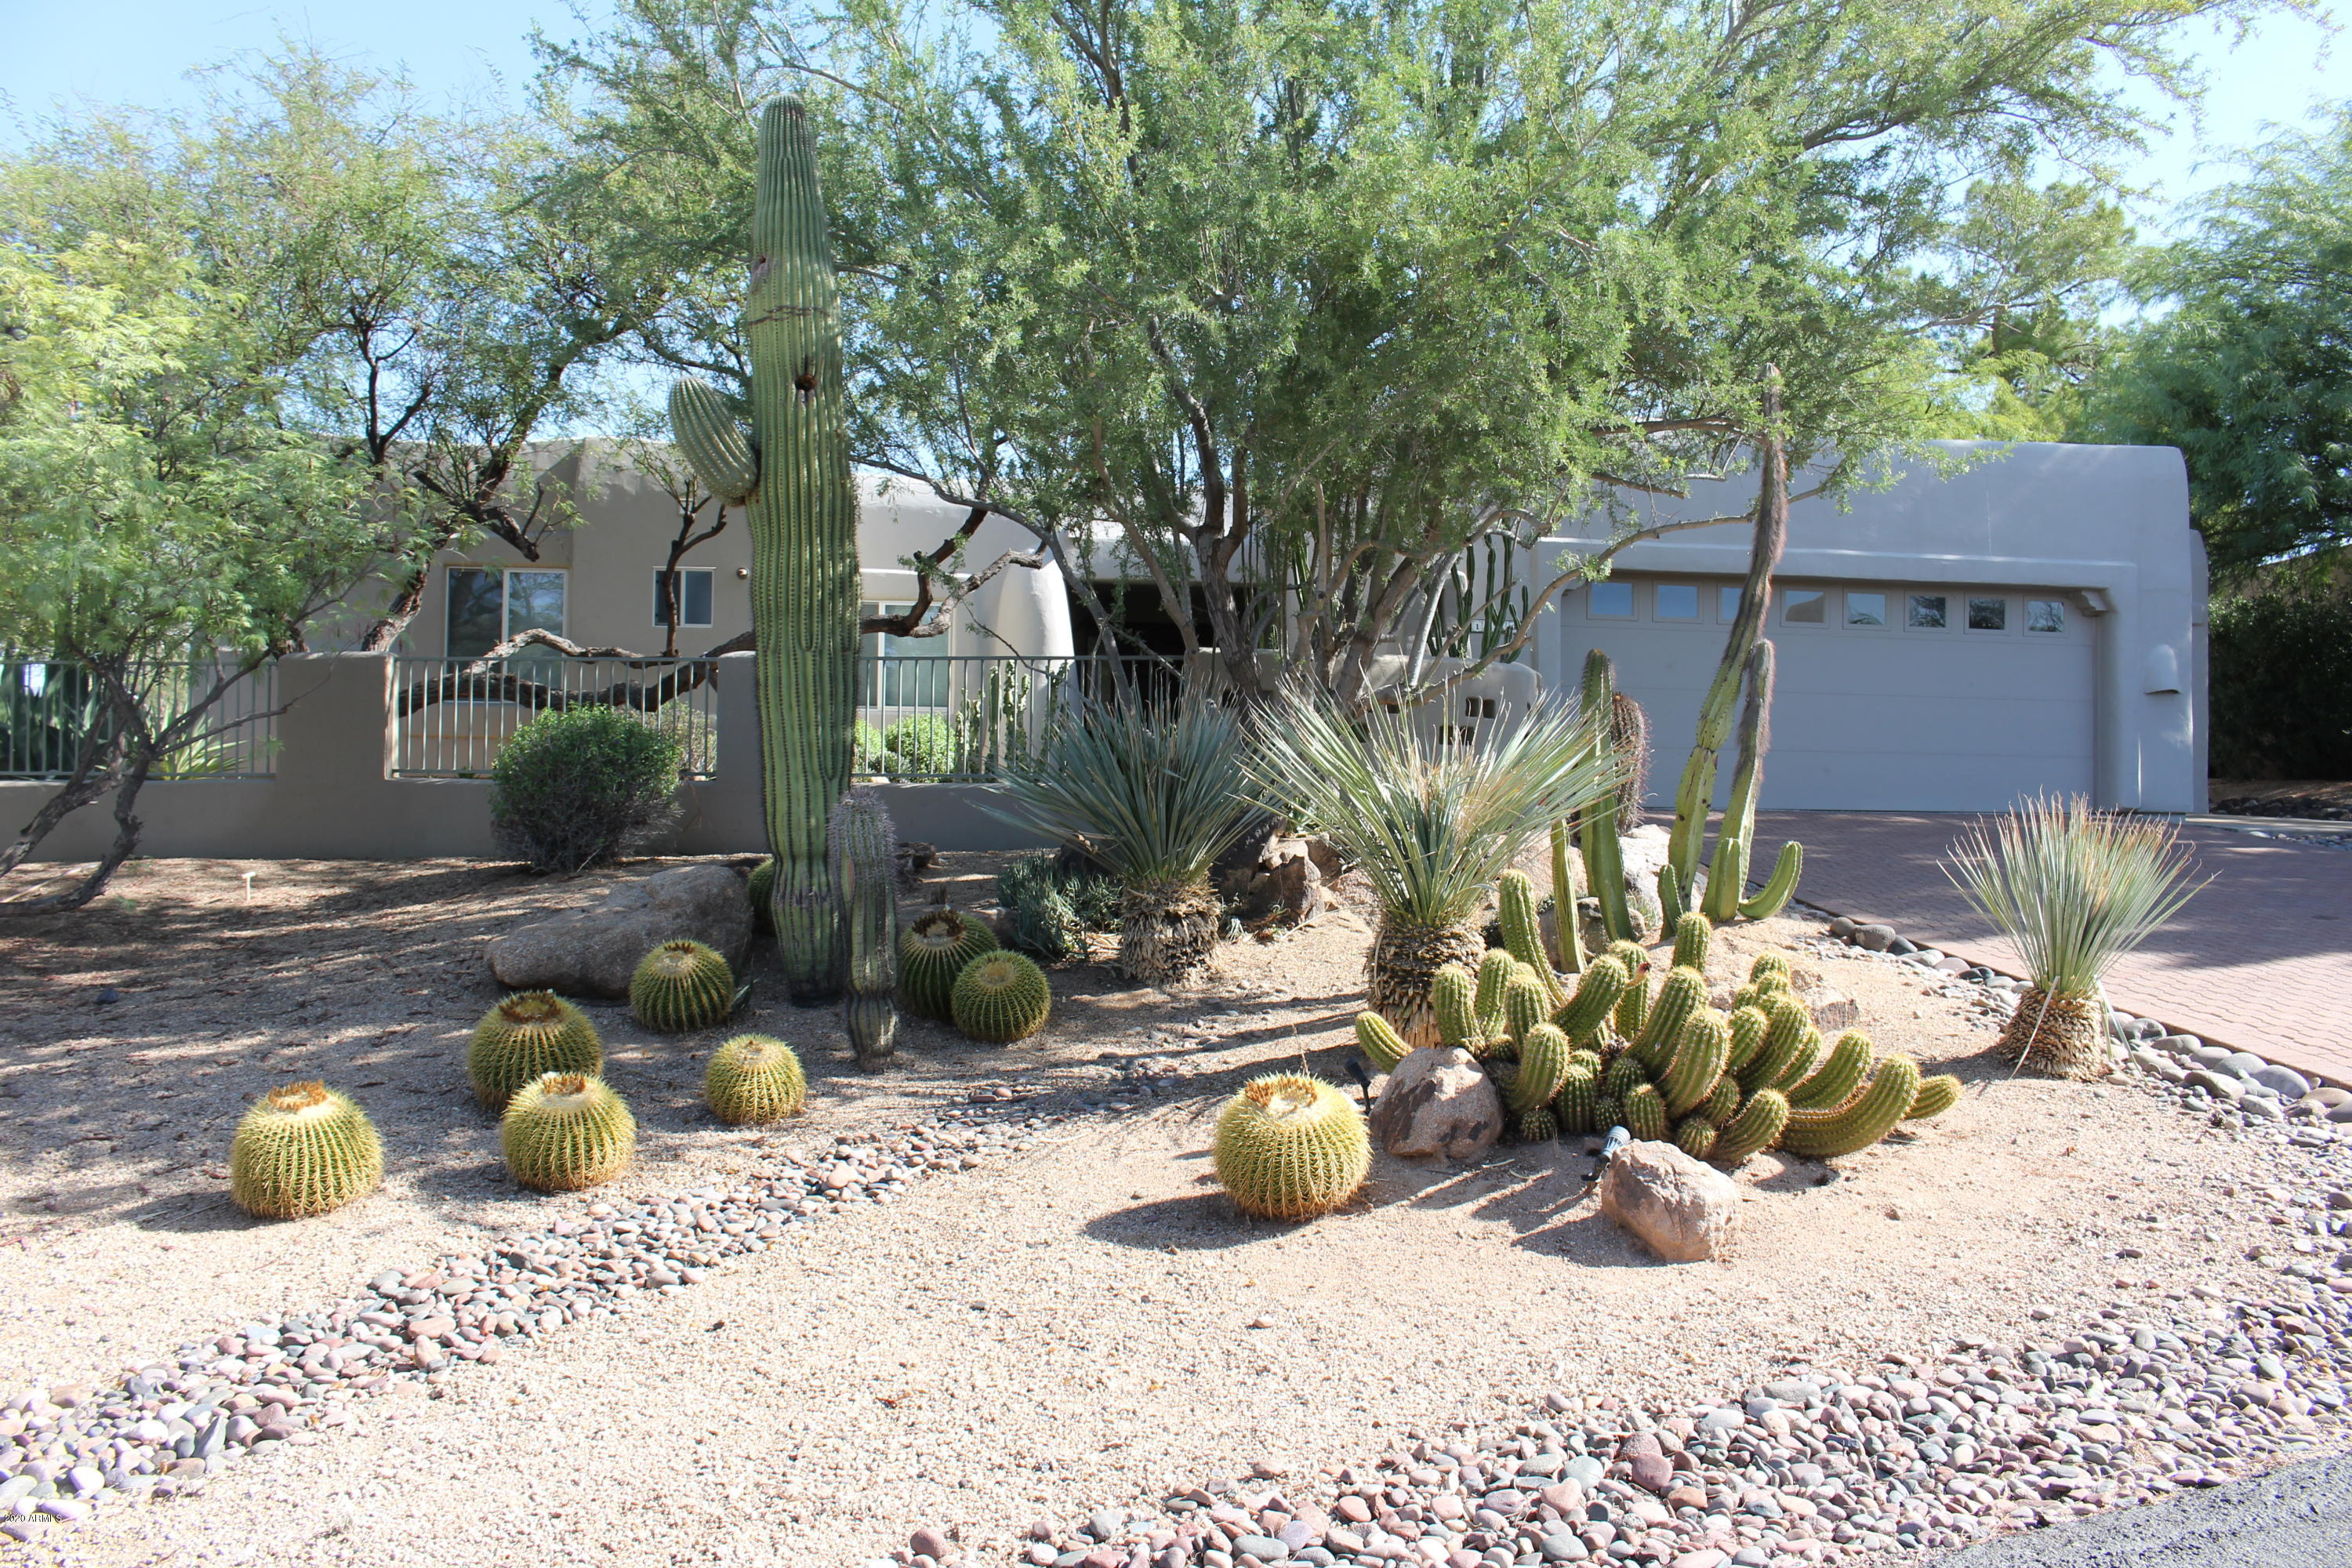 1816 E EAGLE CLAW Drive, Carefree, AZ 85377, 4 Bedrooms Bedrooms, ,Residential Lease,For Rent,1816 E EAGLE CLAW Drive,6205699